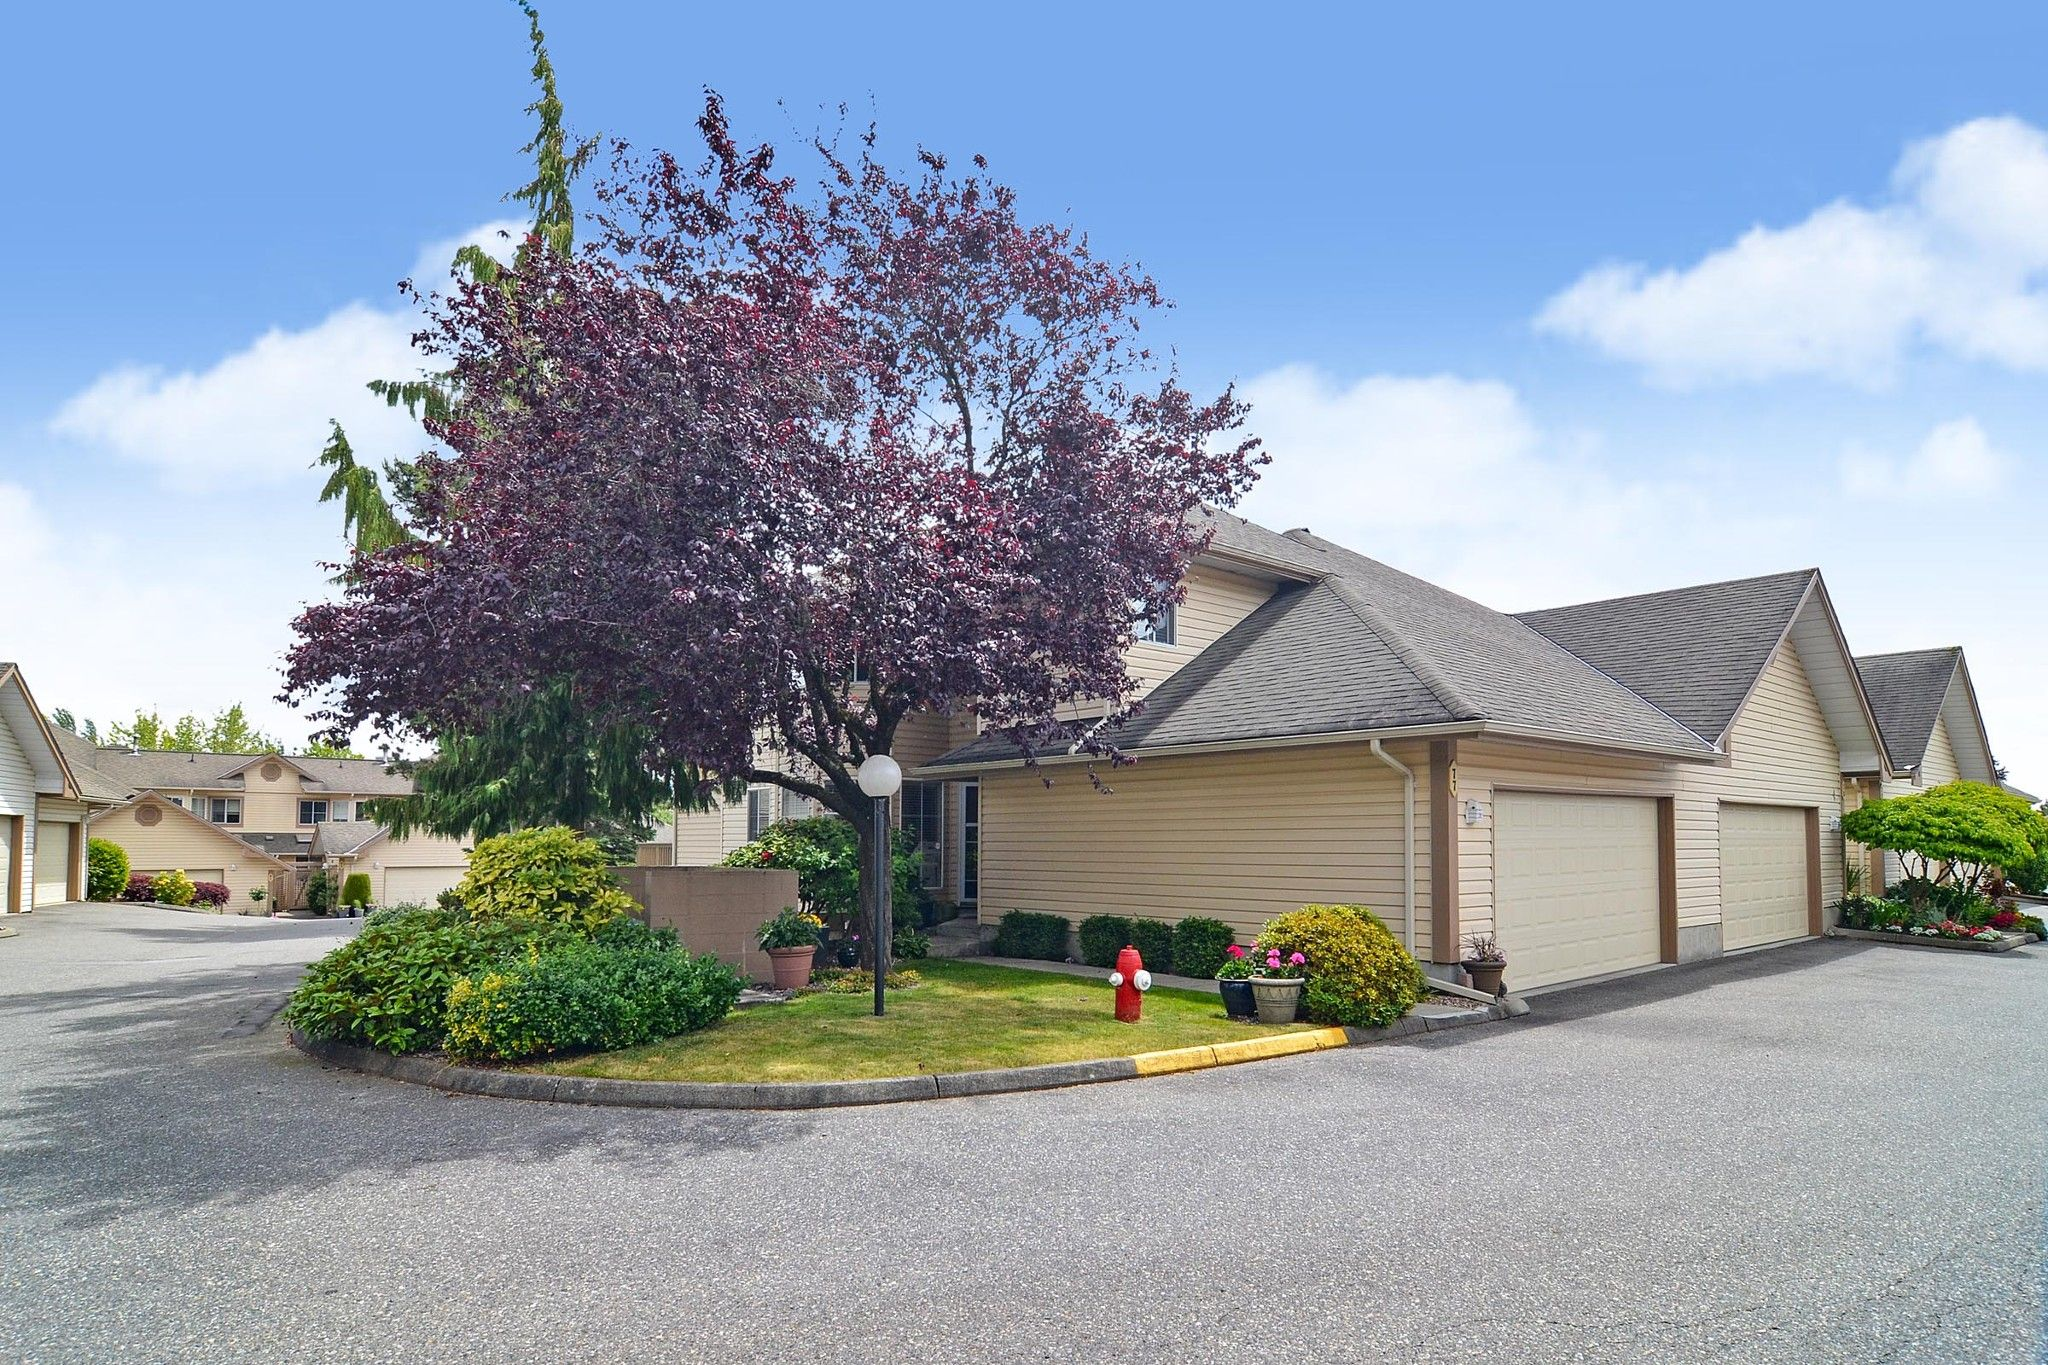 """Main Photo: 77 6140 192 Street in Surrey: Cloverdale BC Townhouse for sale in """"Estates at Manor Ridge"""" (Cloverdale)  : MLS®# R2592035"""